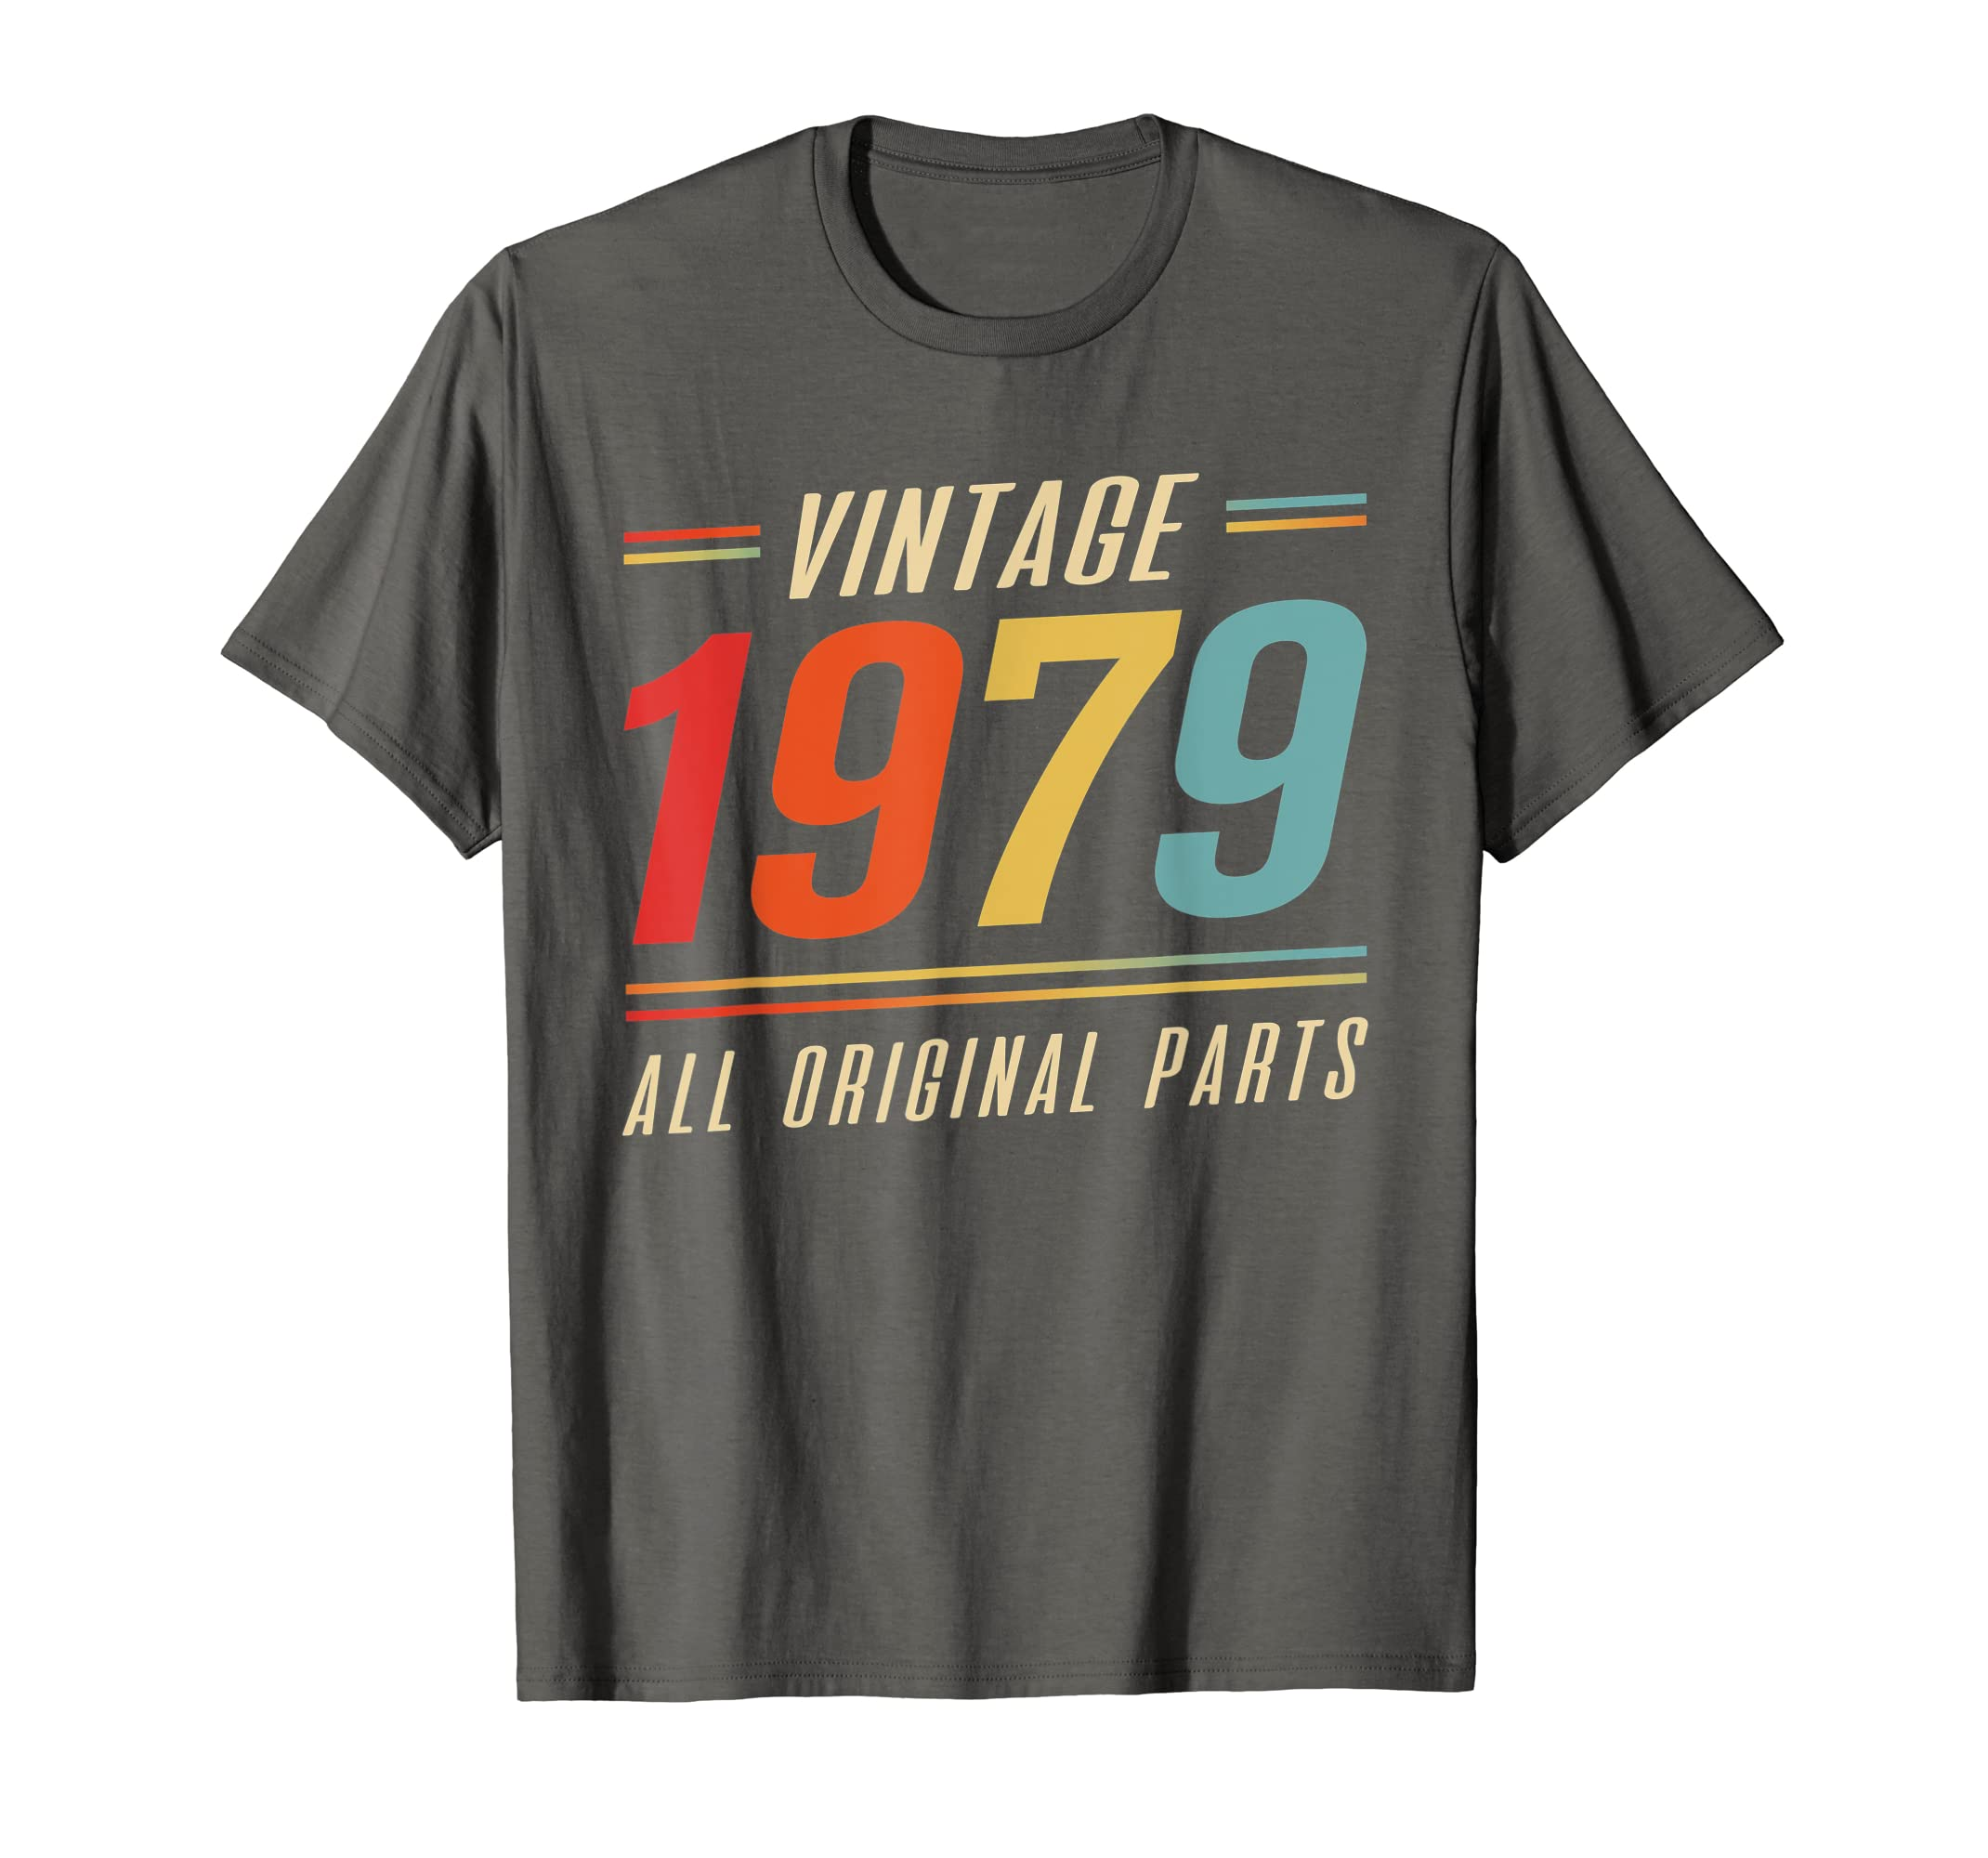 Vintage 1979 T-Shirt – 40th Years Old Made in 1979 Birthday-Teehay